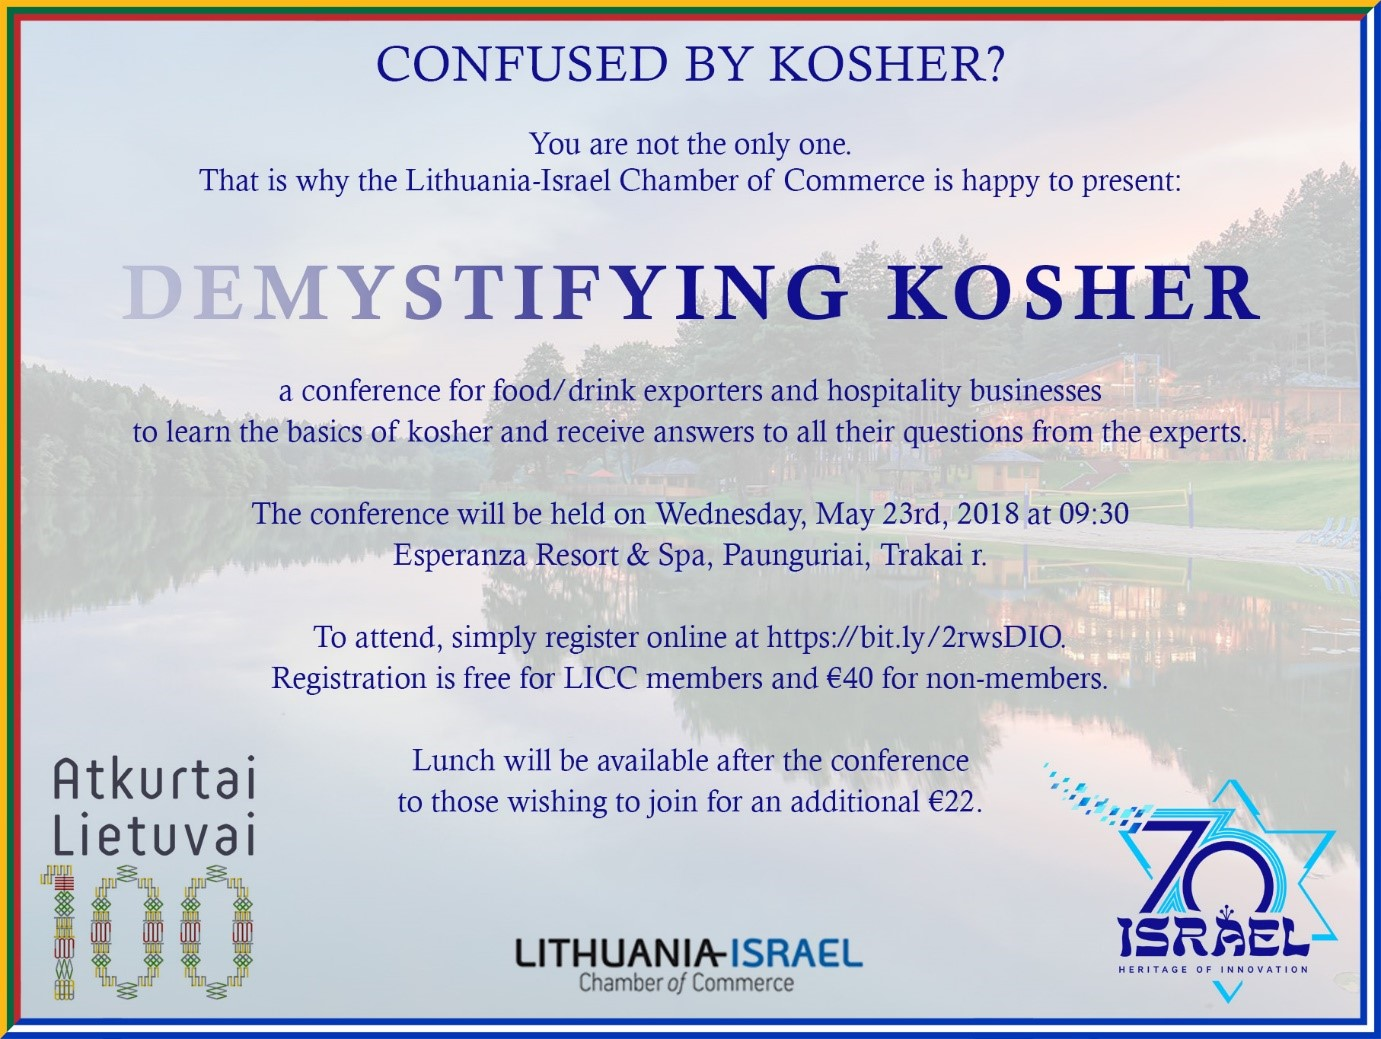 demystifying kosher